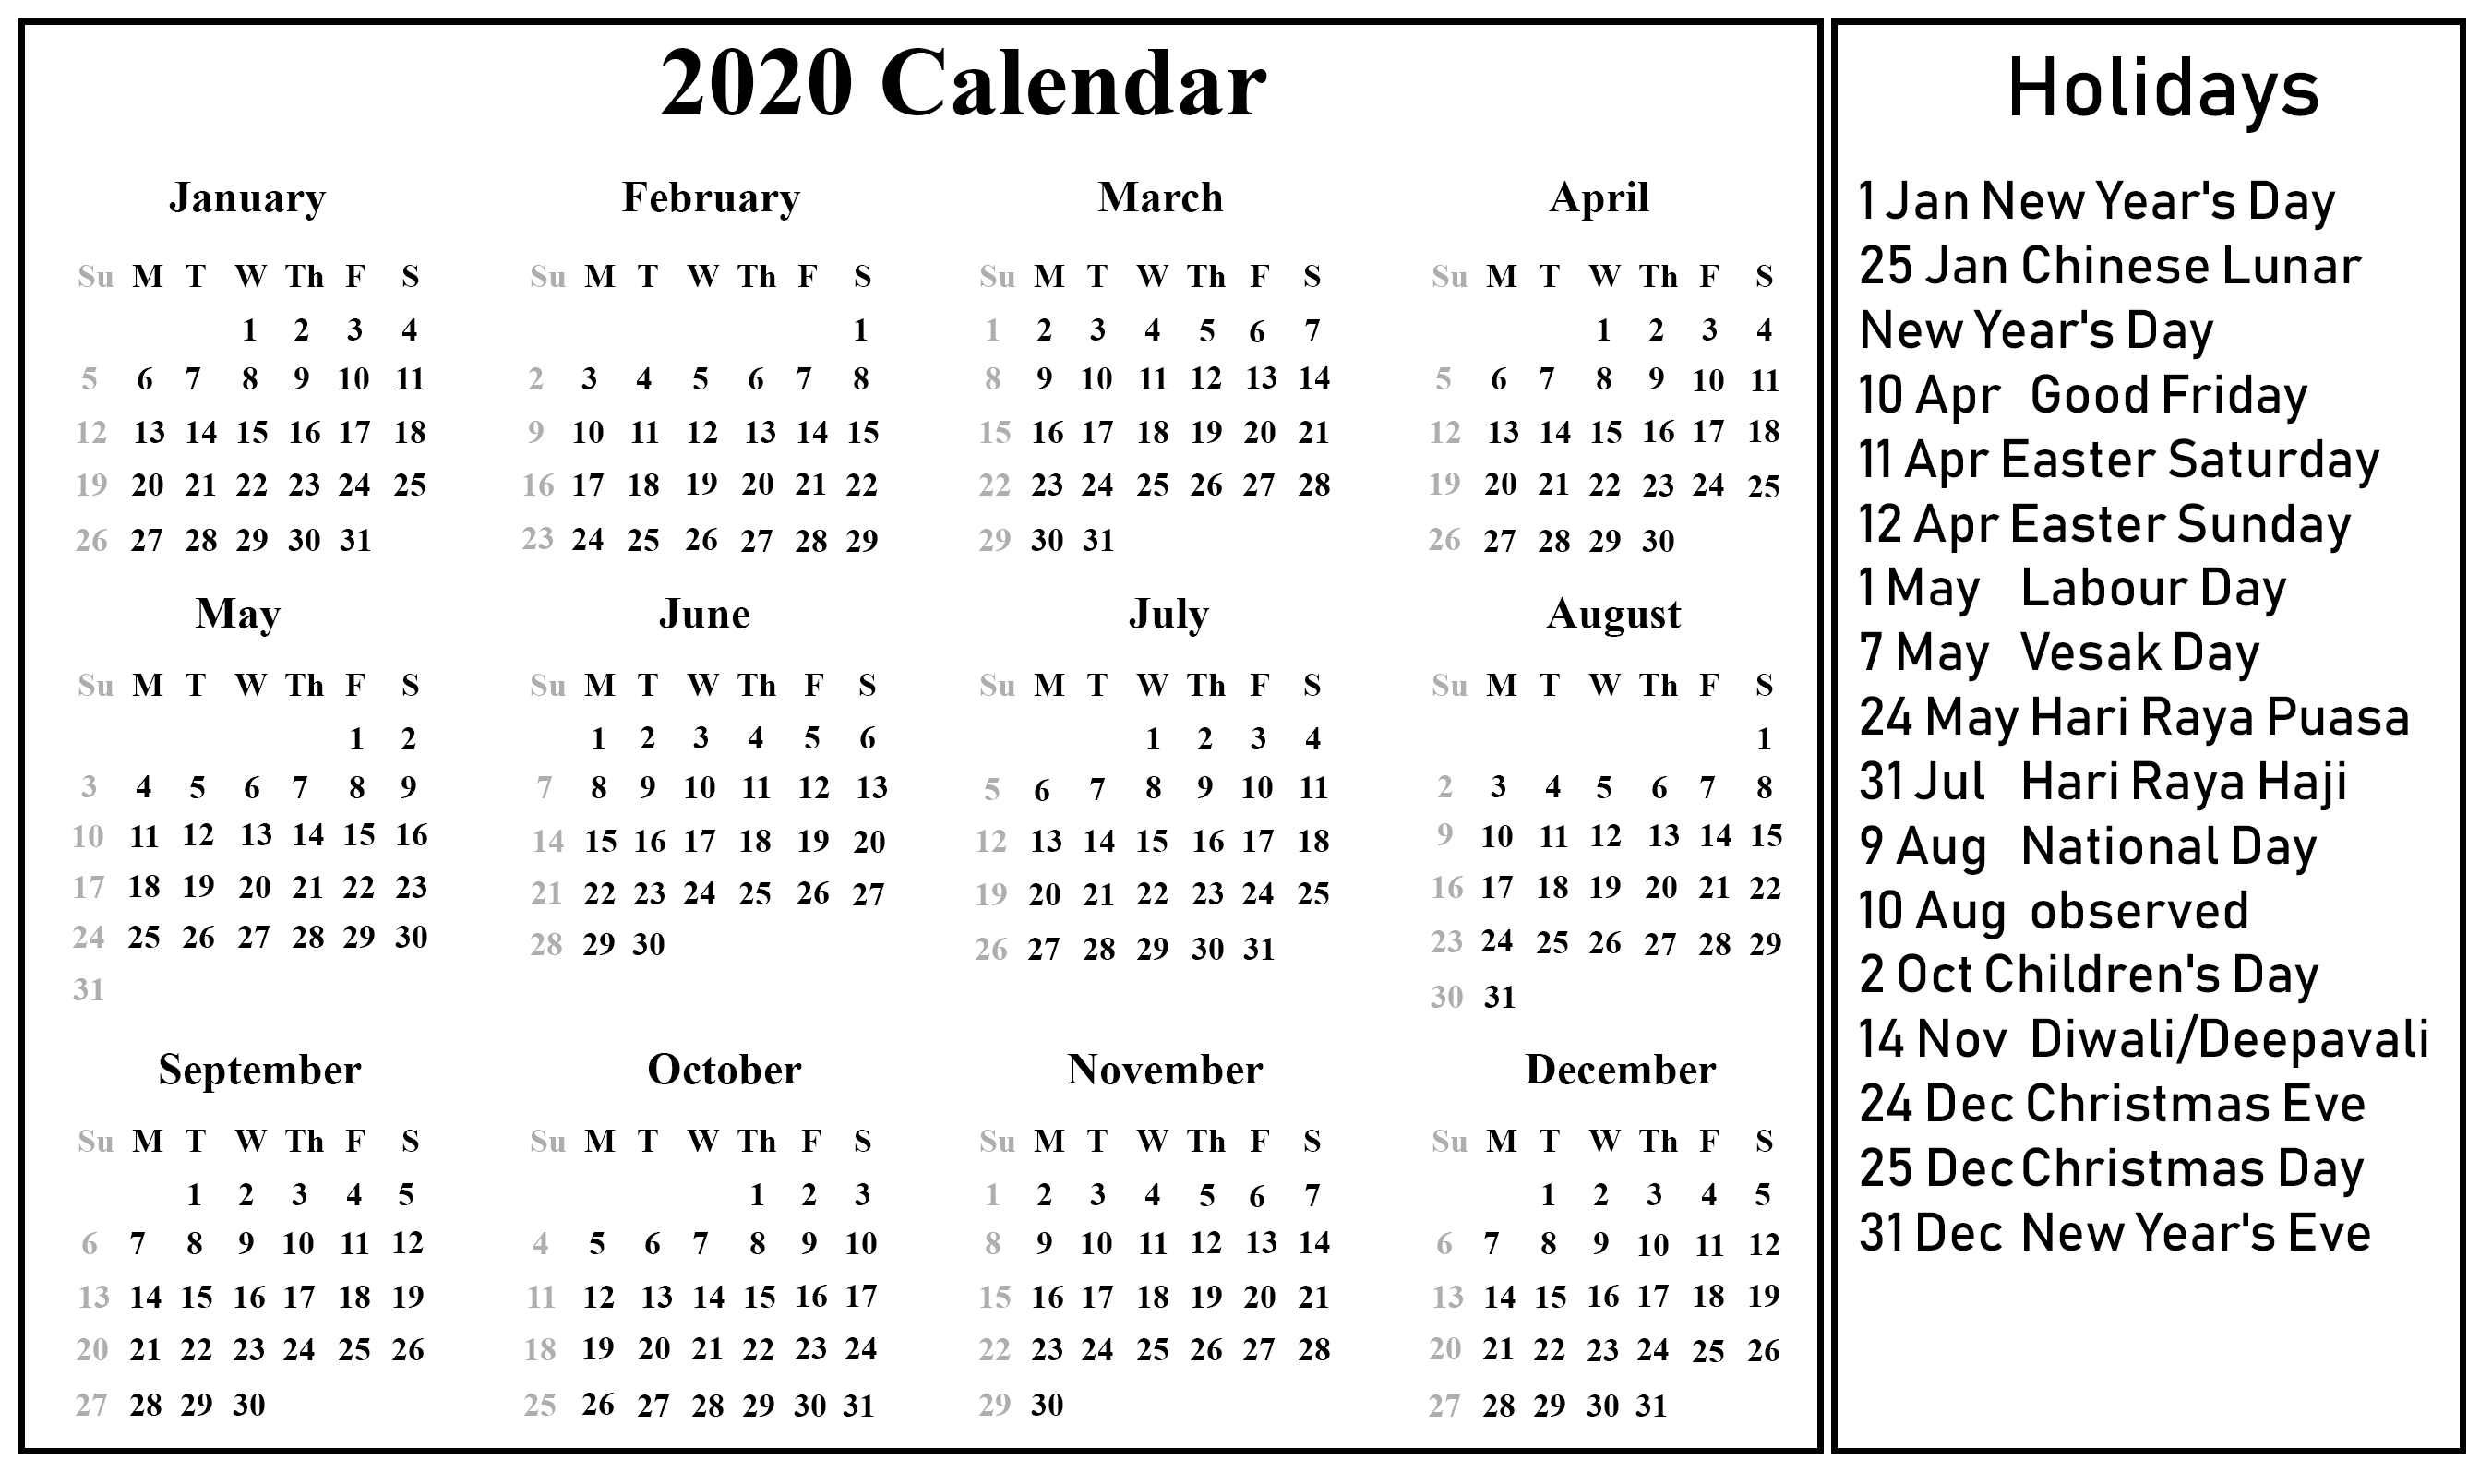 Printable April Calendar Template pertaining to 2020 Sri Lanka Calendar